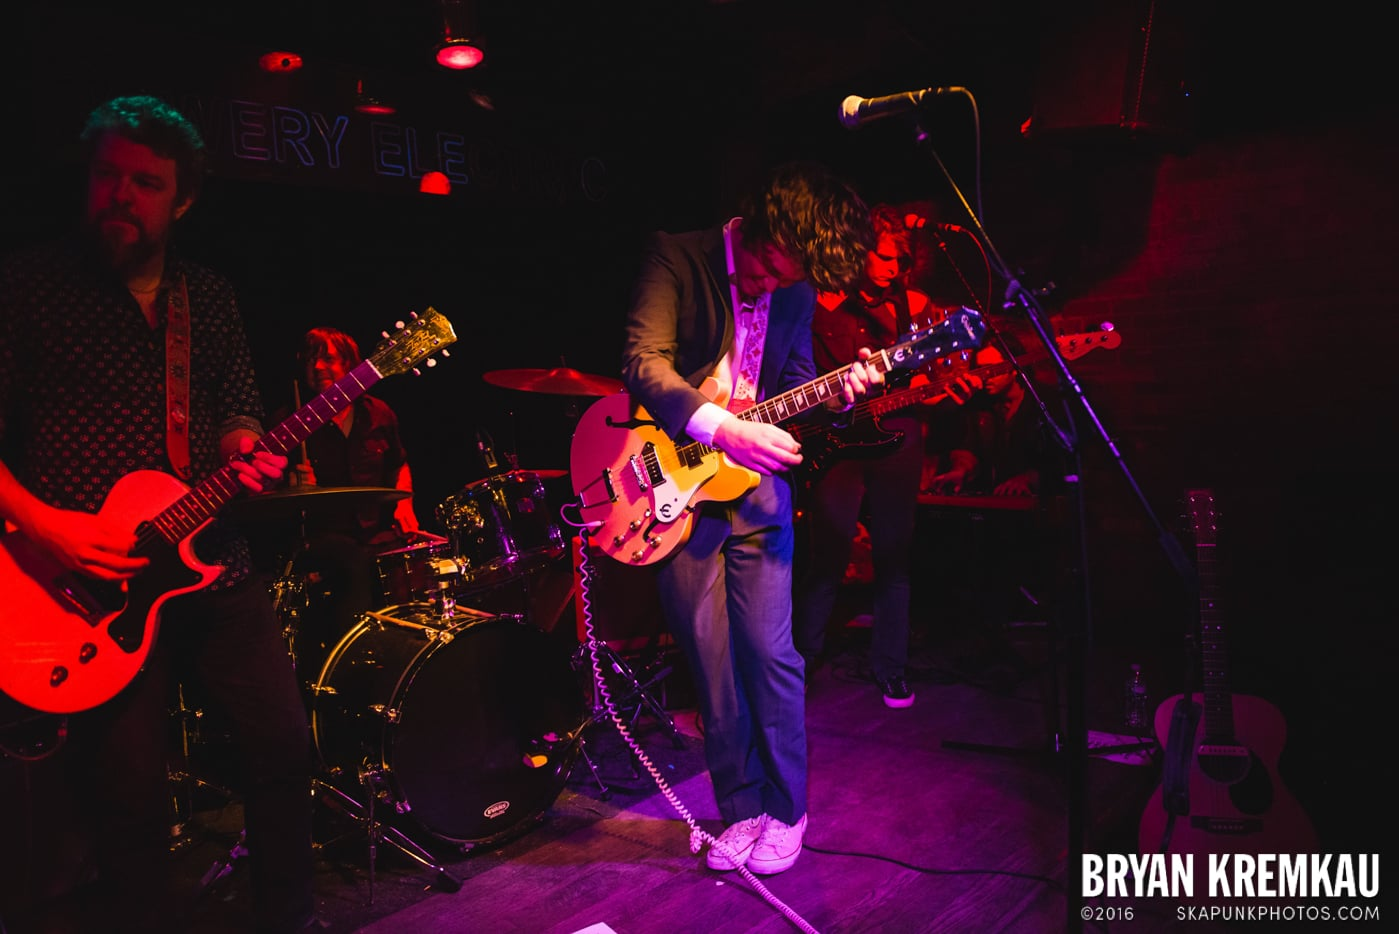 Trapper Schoepp & The Shades @ Bowery Electric, NYC - 11.20.14 (9)